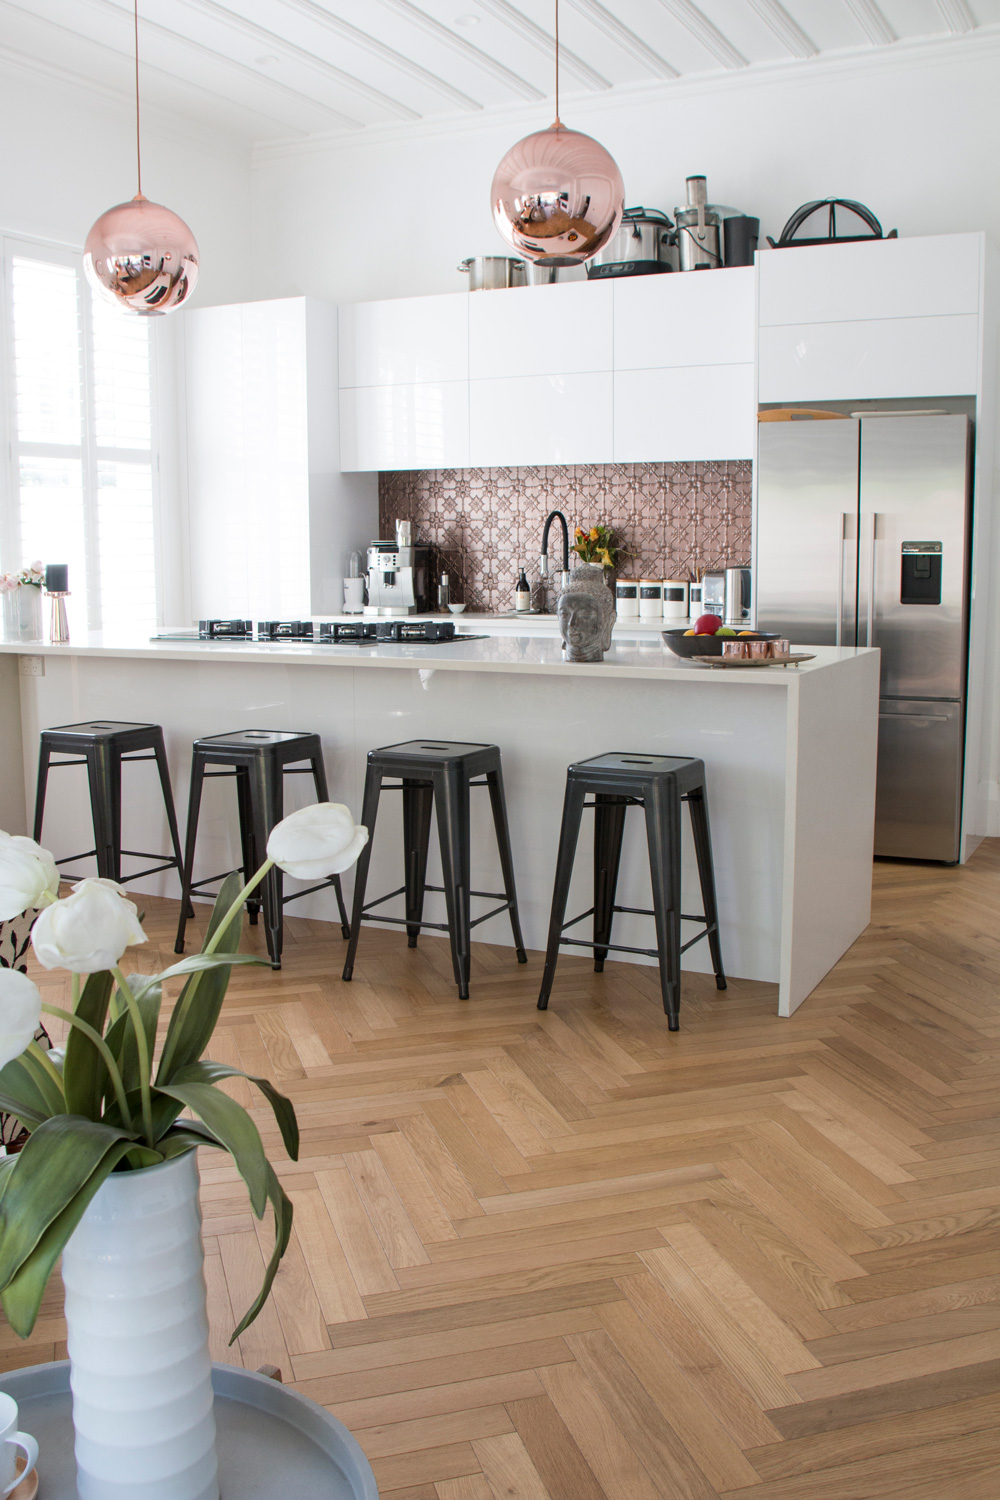 Herringbone Bone pattern - Kitchen